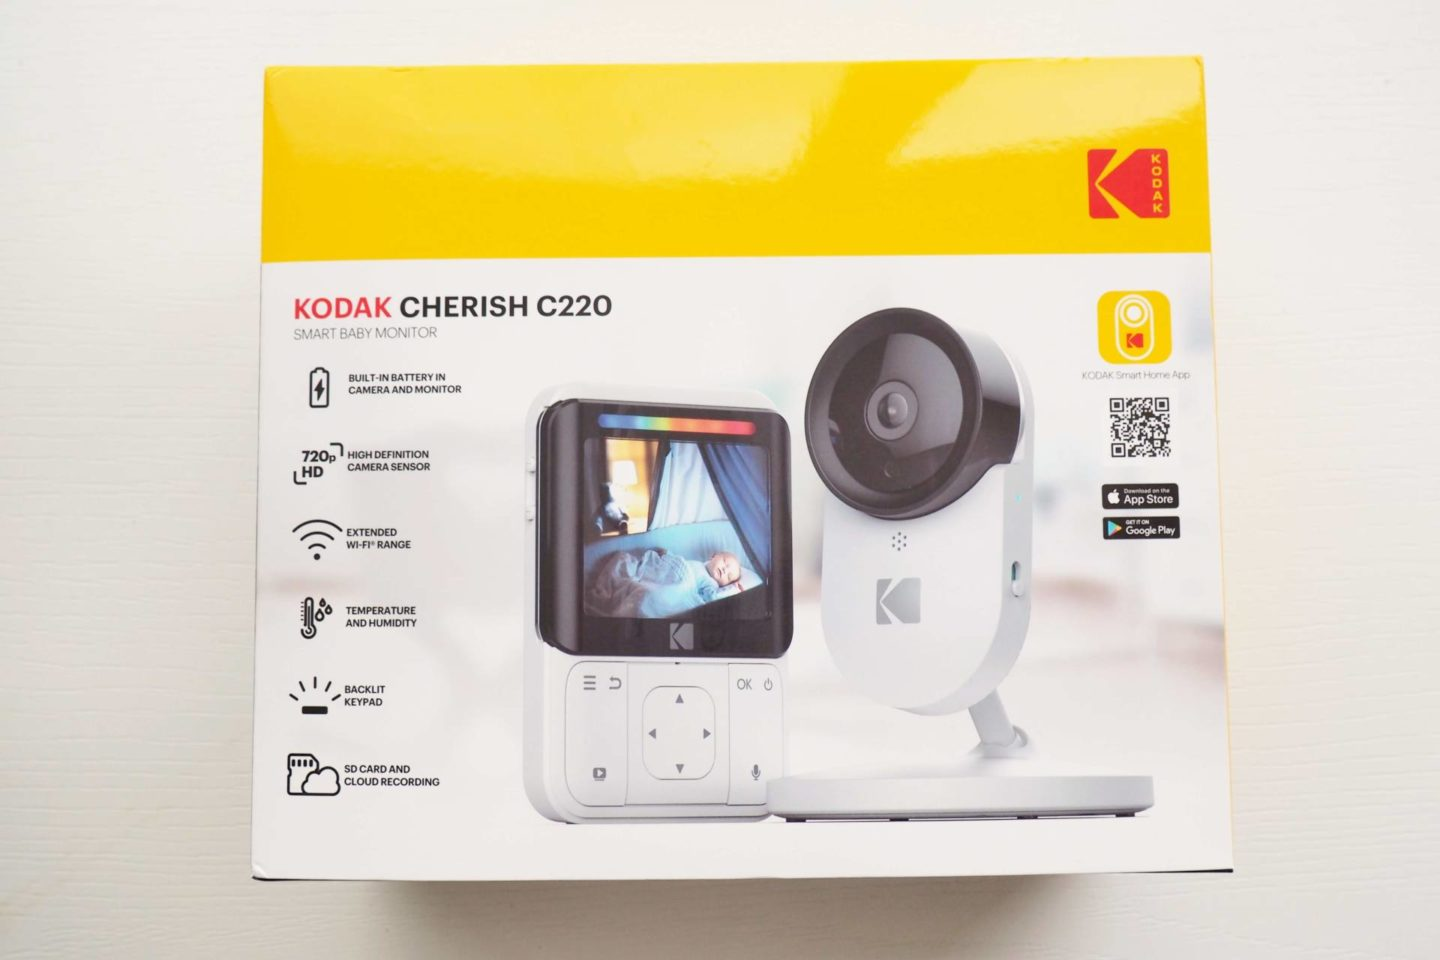 Kodak Cherish Camera Baby Monitor - must-have baby products